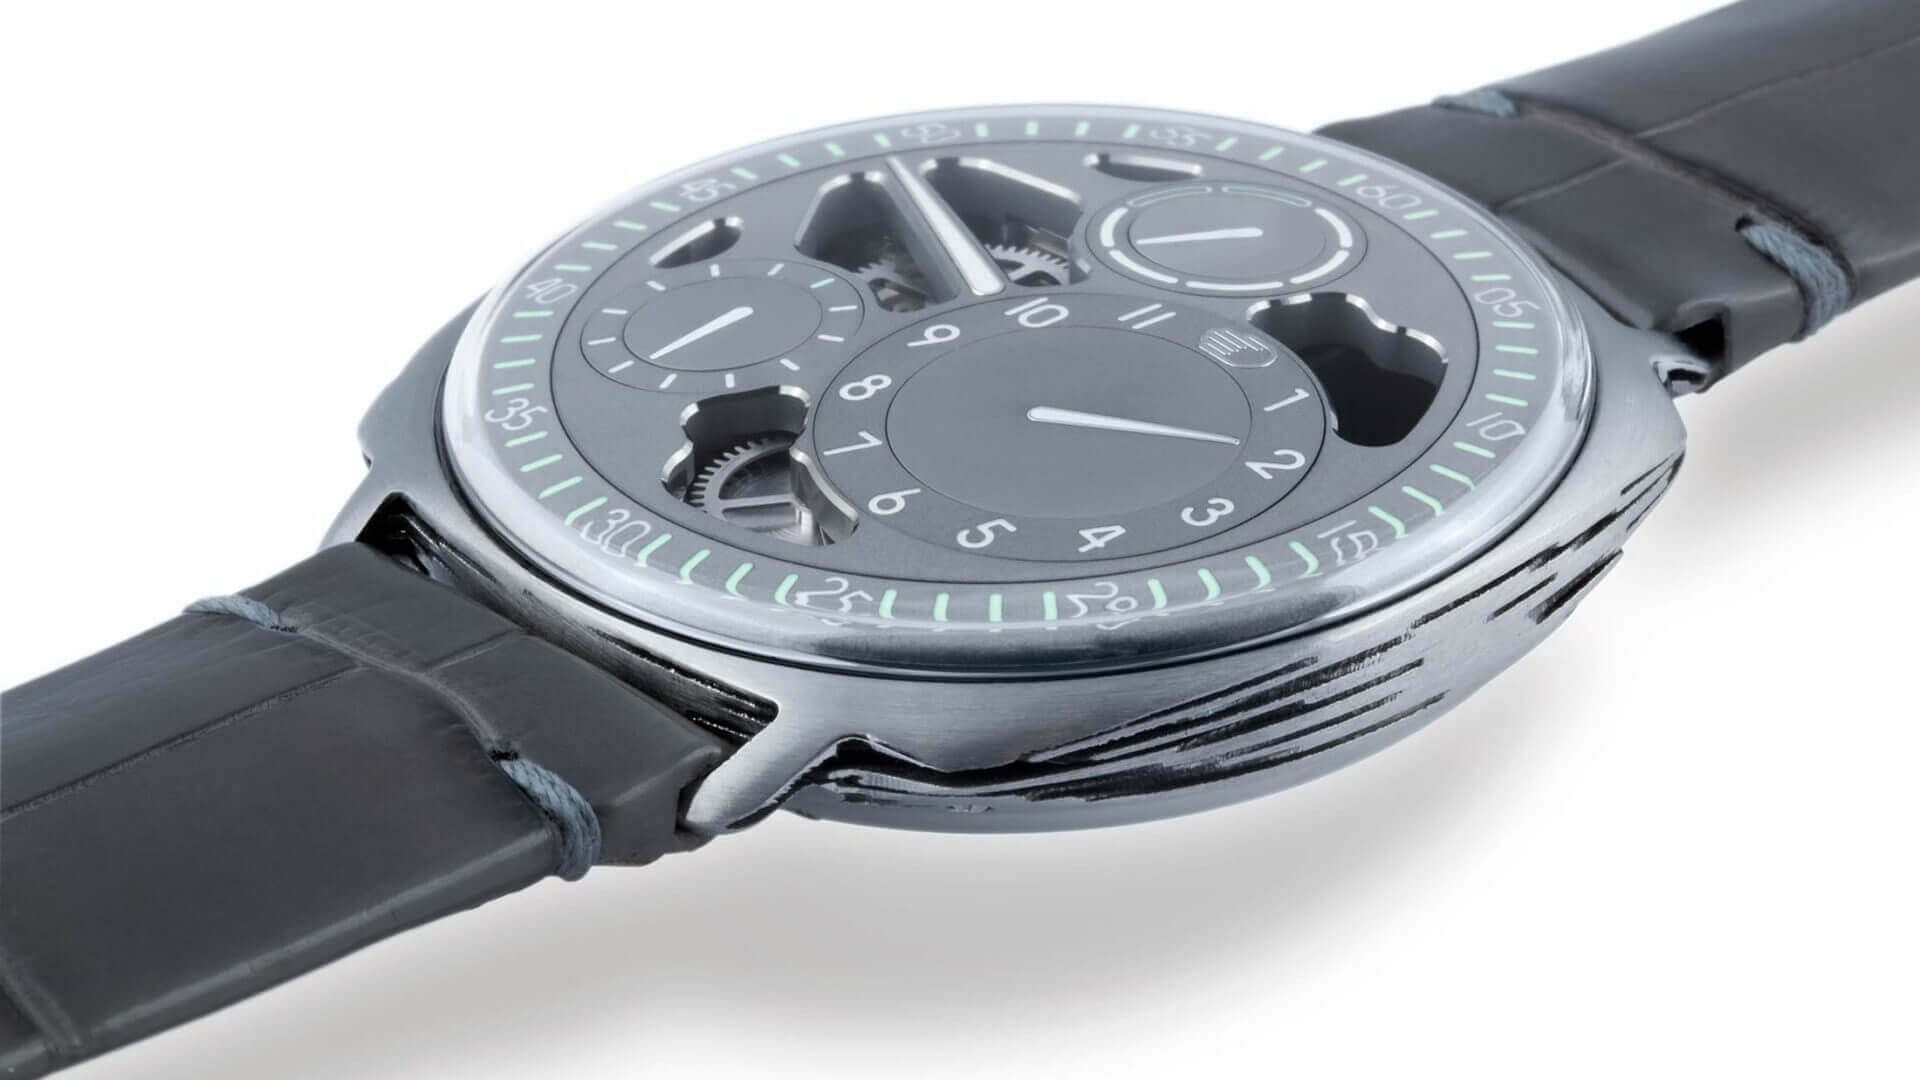 This Charity Auction Watch Has a Unique Metal Sintered Case | All3DP